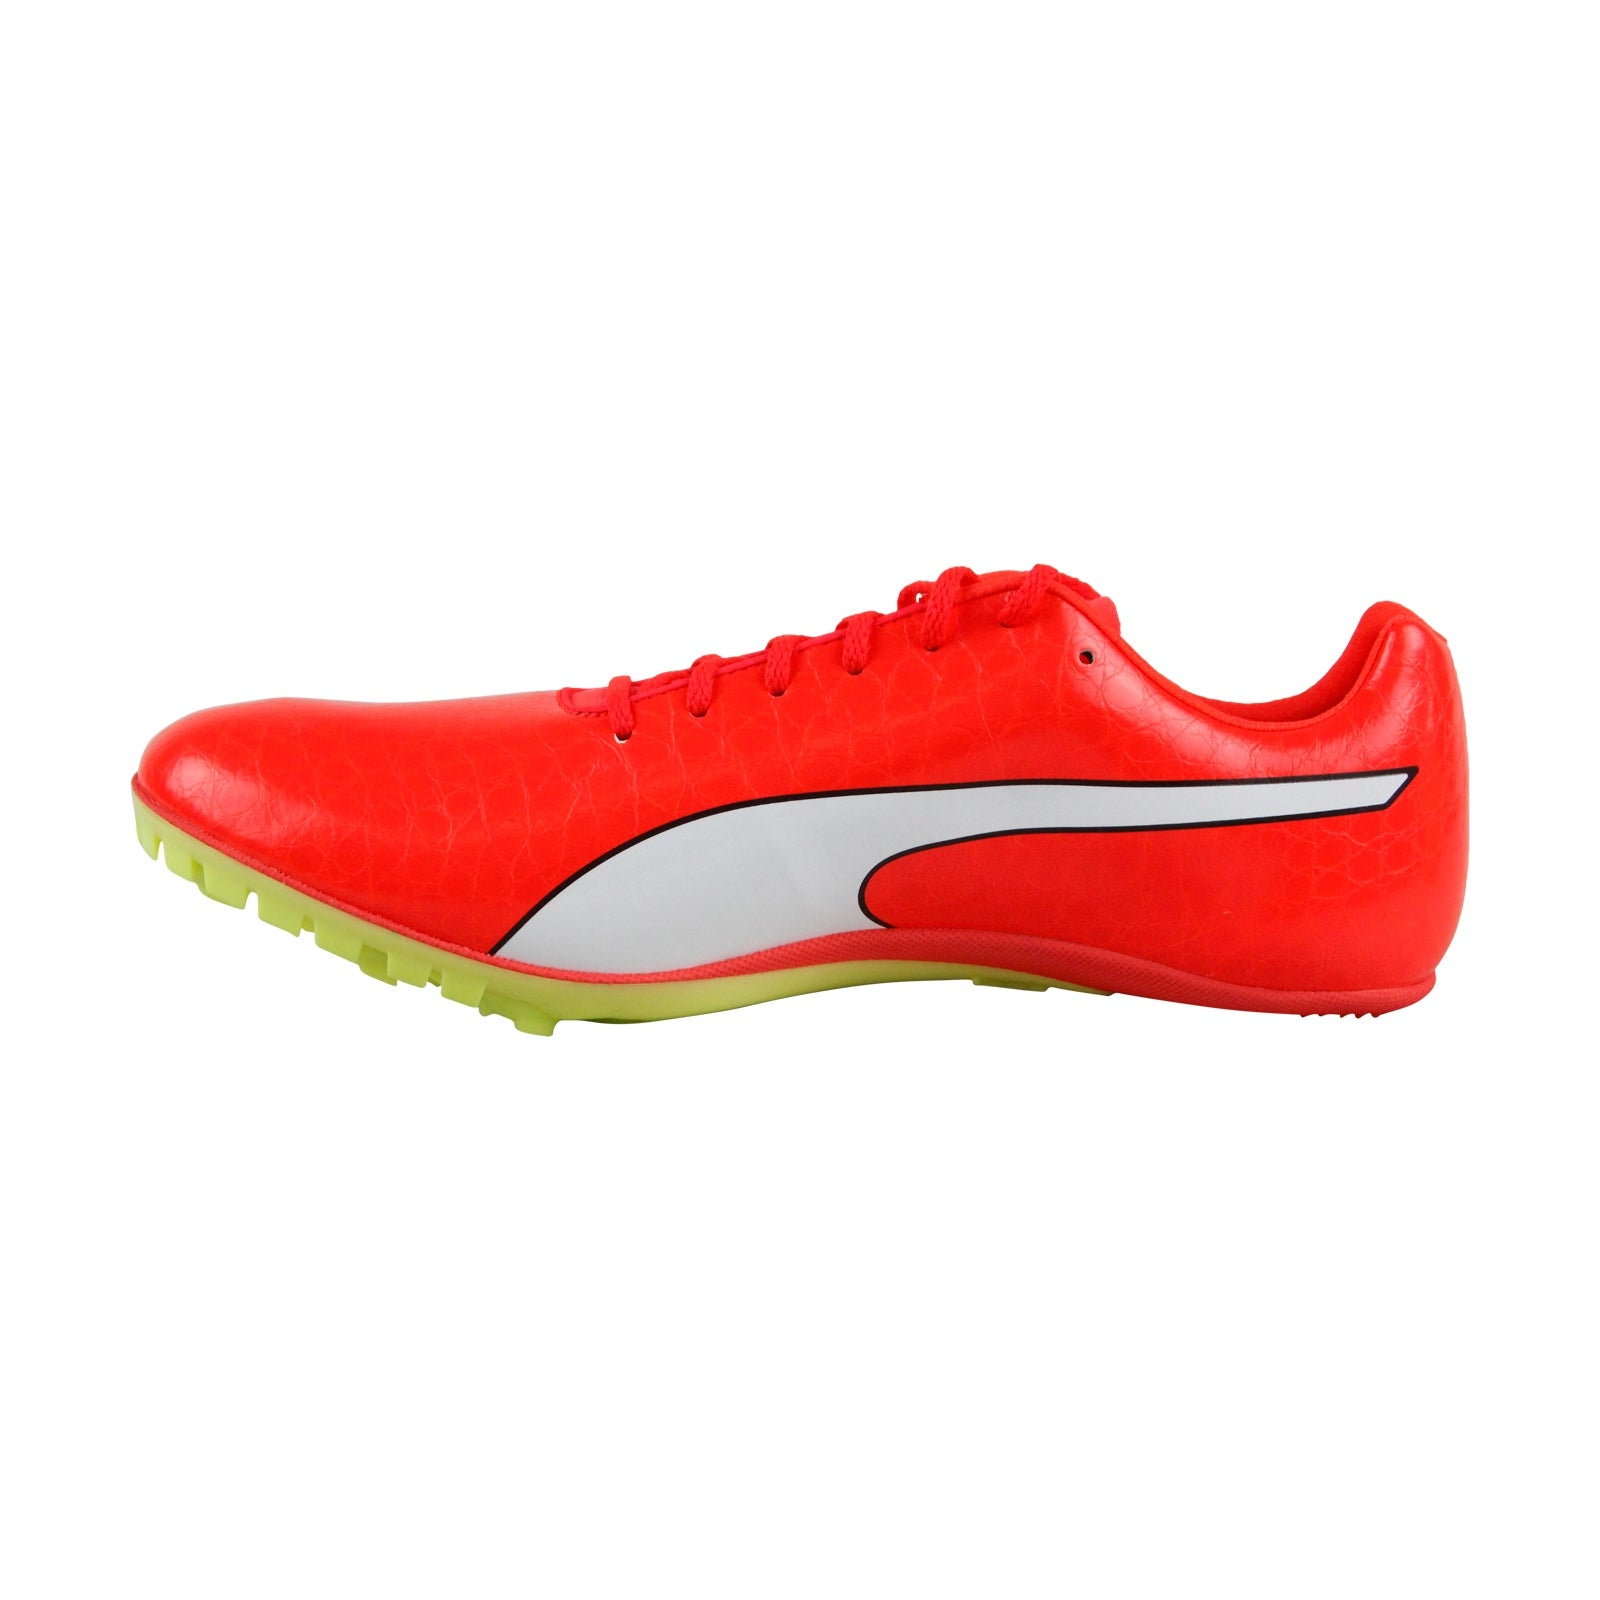 46f5f77f4bf398 Shop Puma Evospeed Sprint 8 Mens Red Leather Athletic Lace Up Running Shoes  - Free Shipping Today - Overstock - 25364958